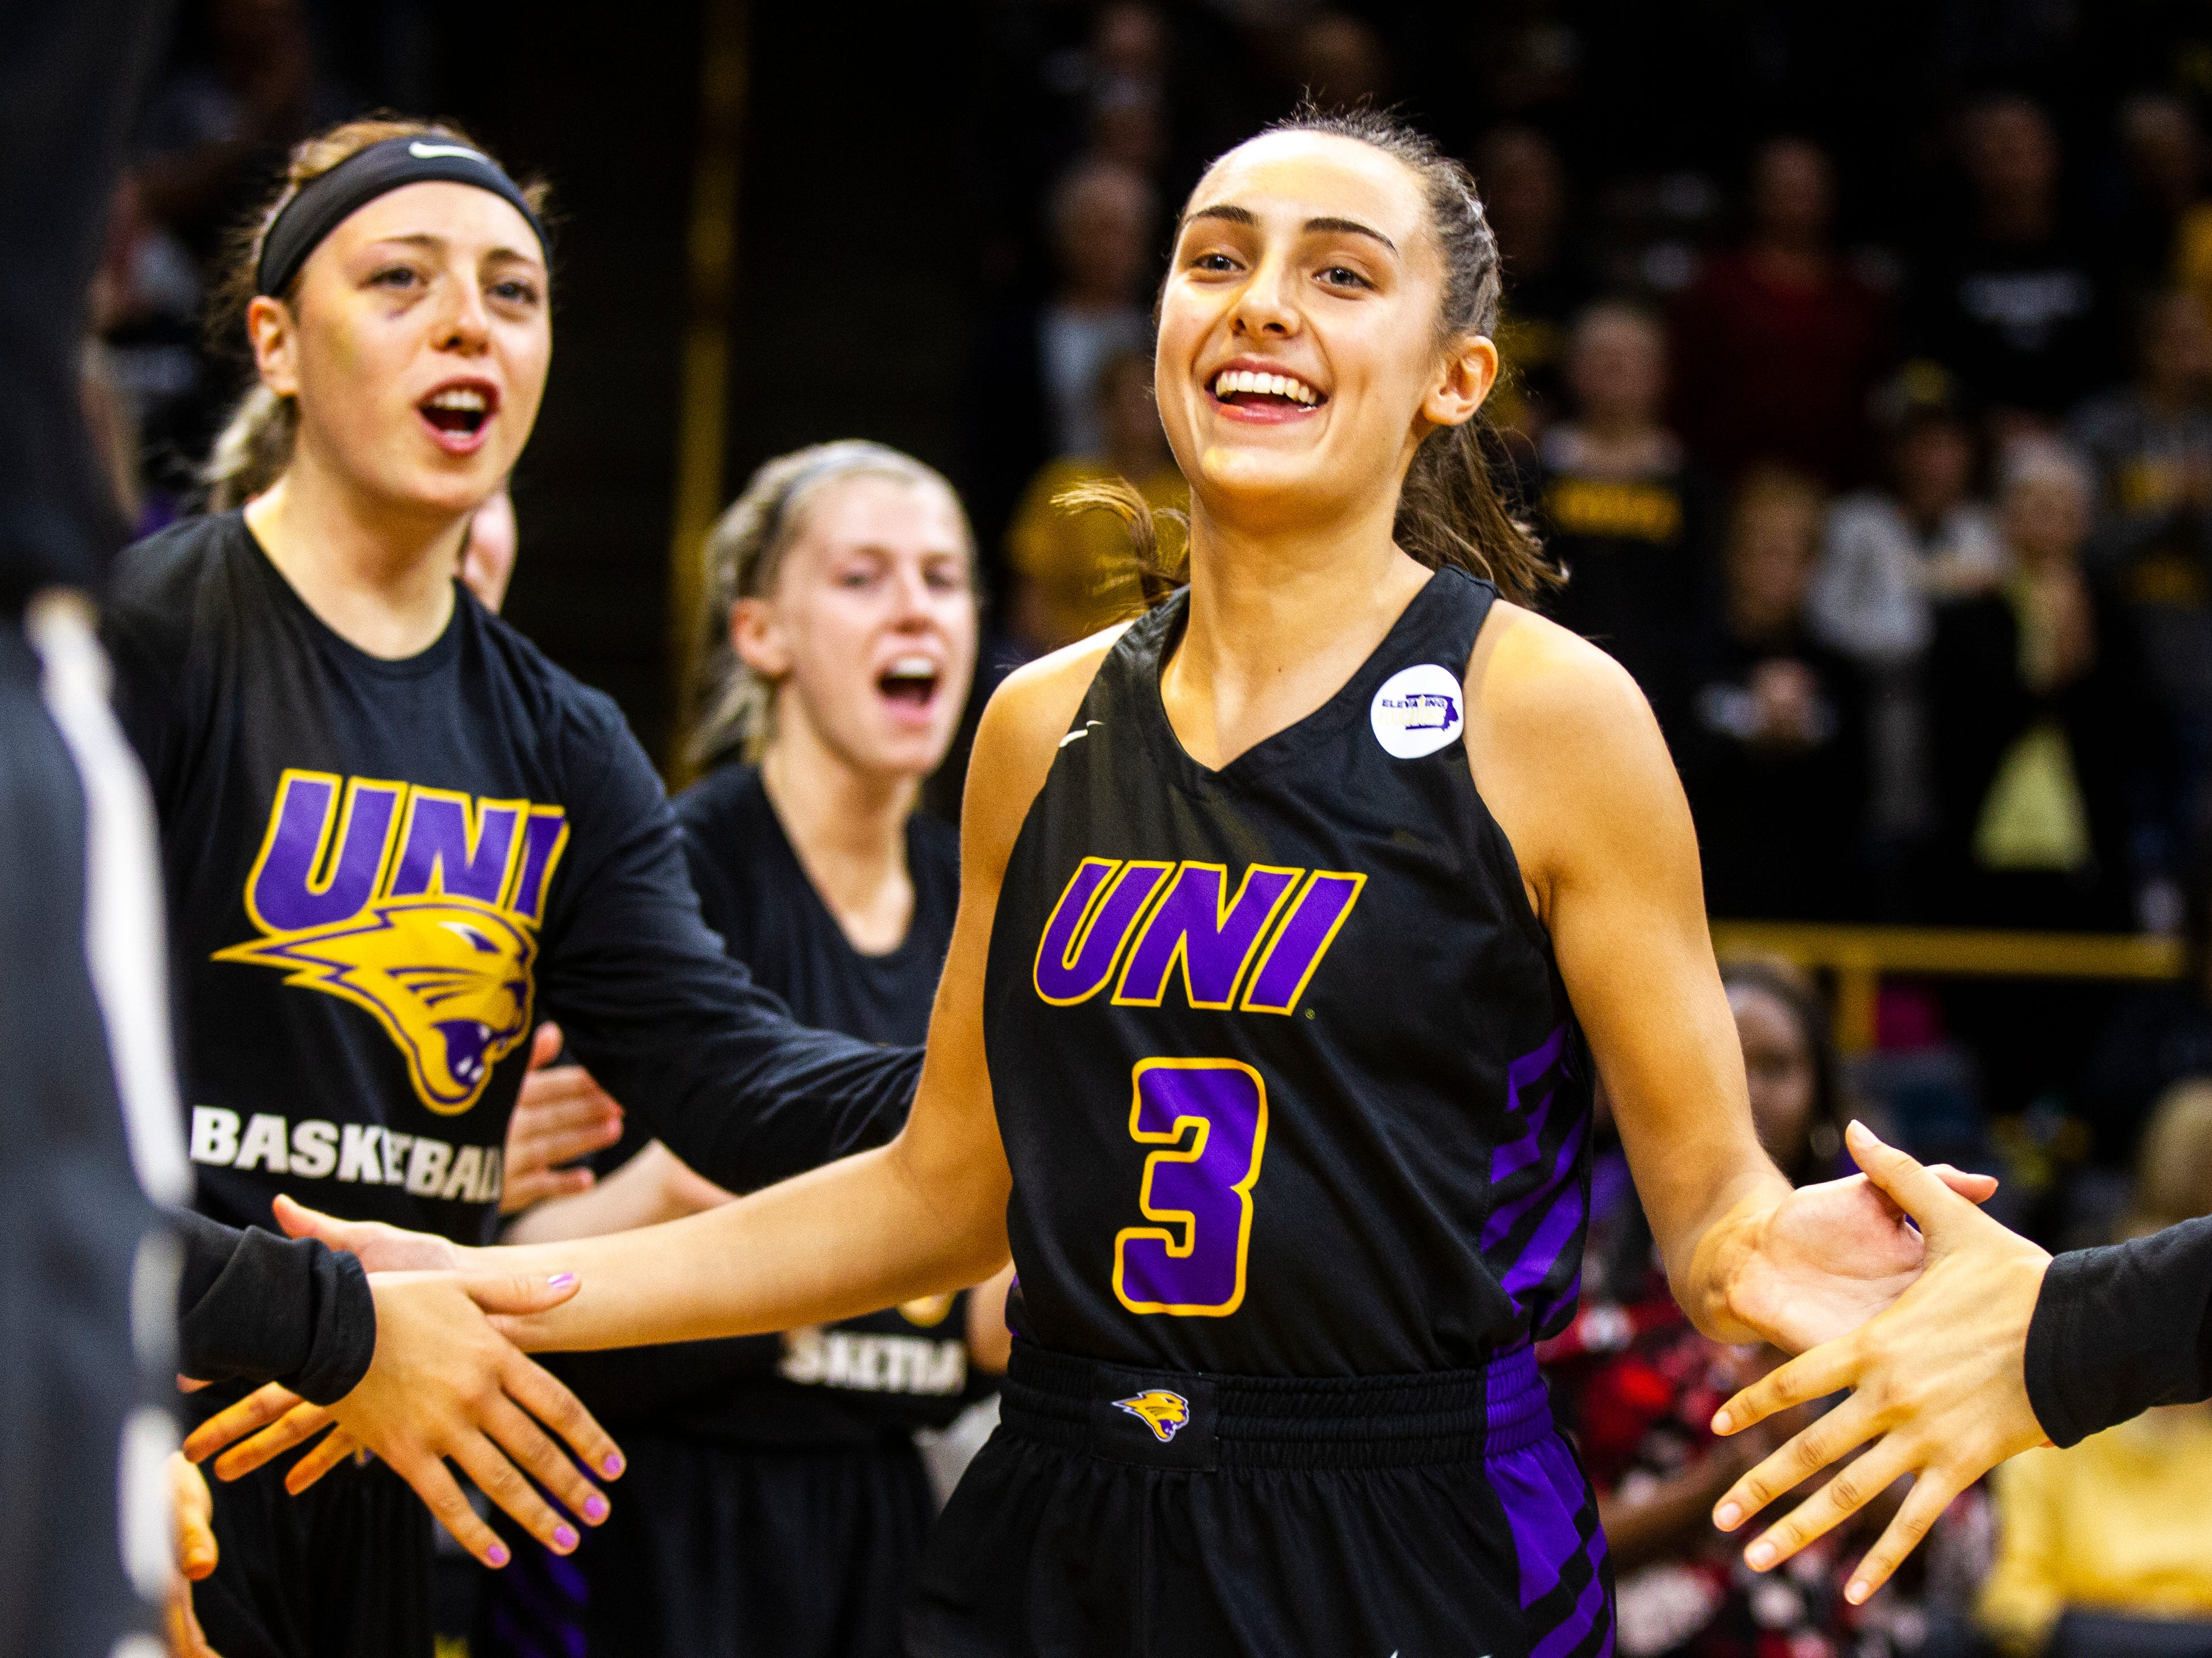 Northern Iowa guard Karli Rucker (3) is introduced during a NCAA women's basketball game on Sunday, Dec. 16, 2018, at Carver-Hawkeye Arena in Iowa City.